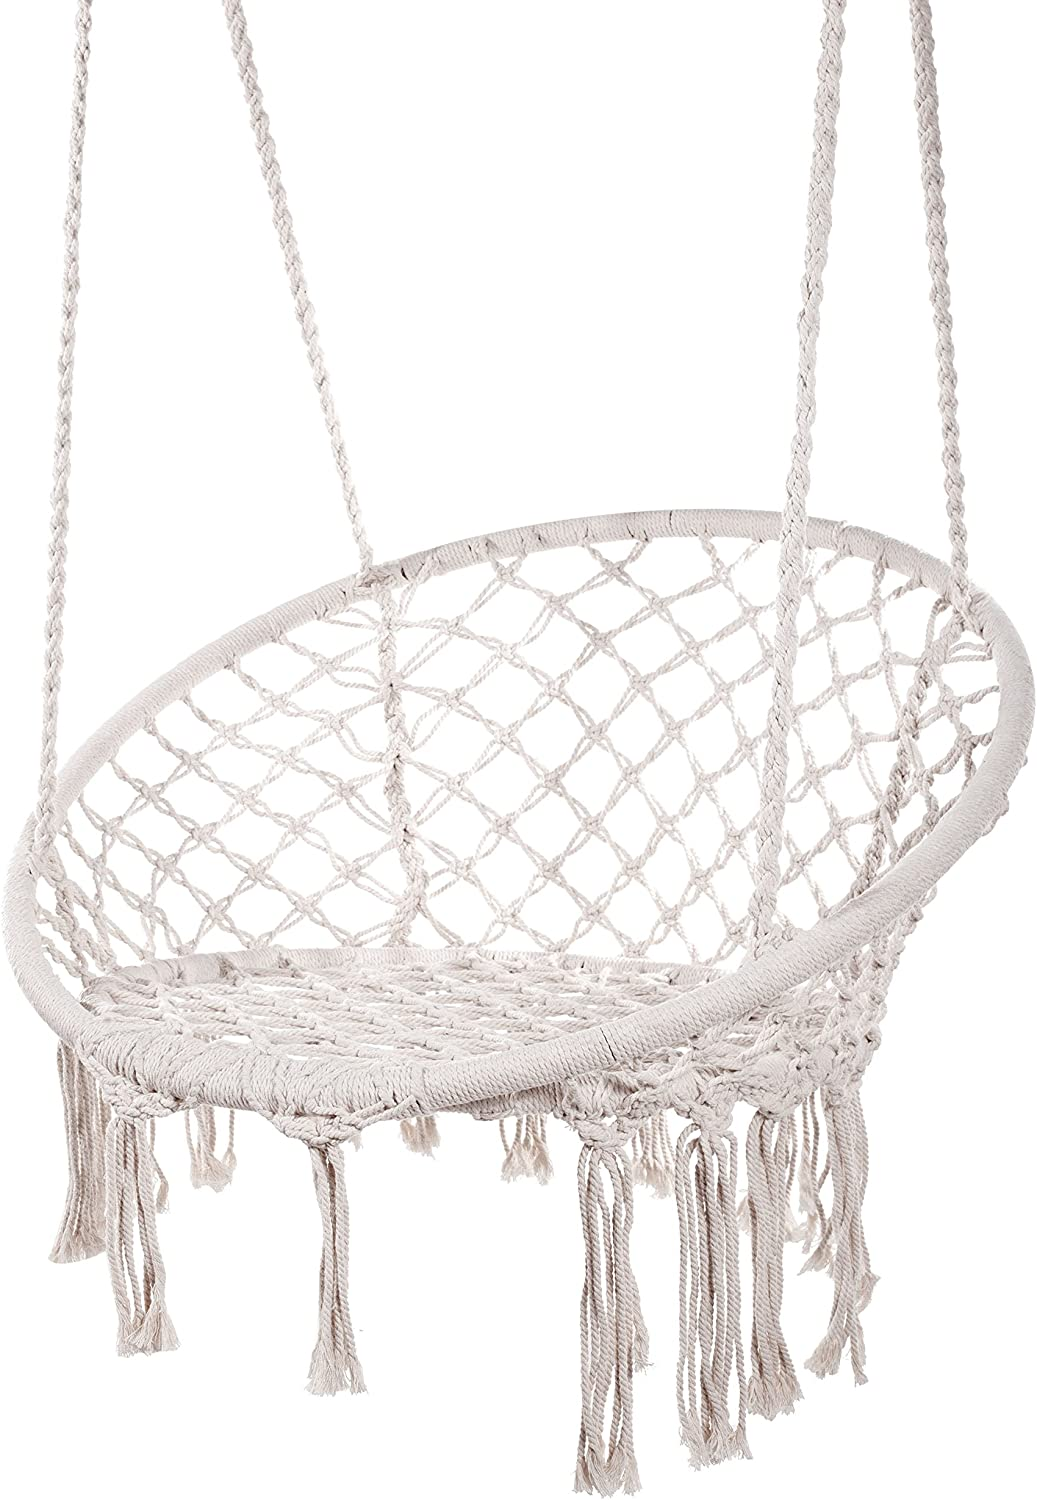 Karriw Hammock Chair Macrame Swing,Cotton Hanging Macrame Hammock Swing Chair Ideal for Indoor, Outdoor, Home,Bedroom, Patio, Deck, Yard, Garden (White)